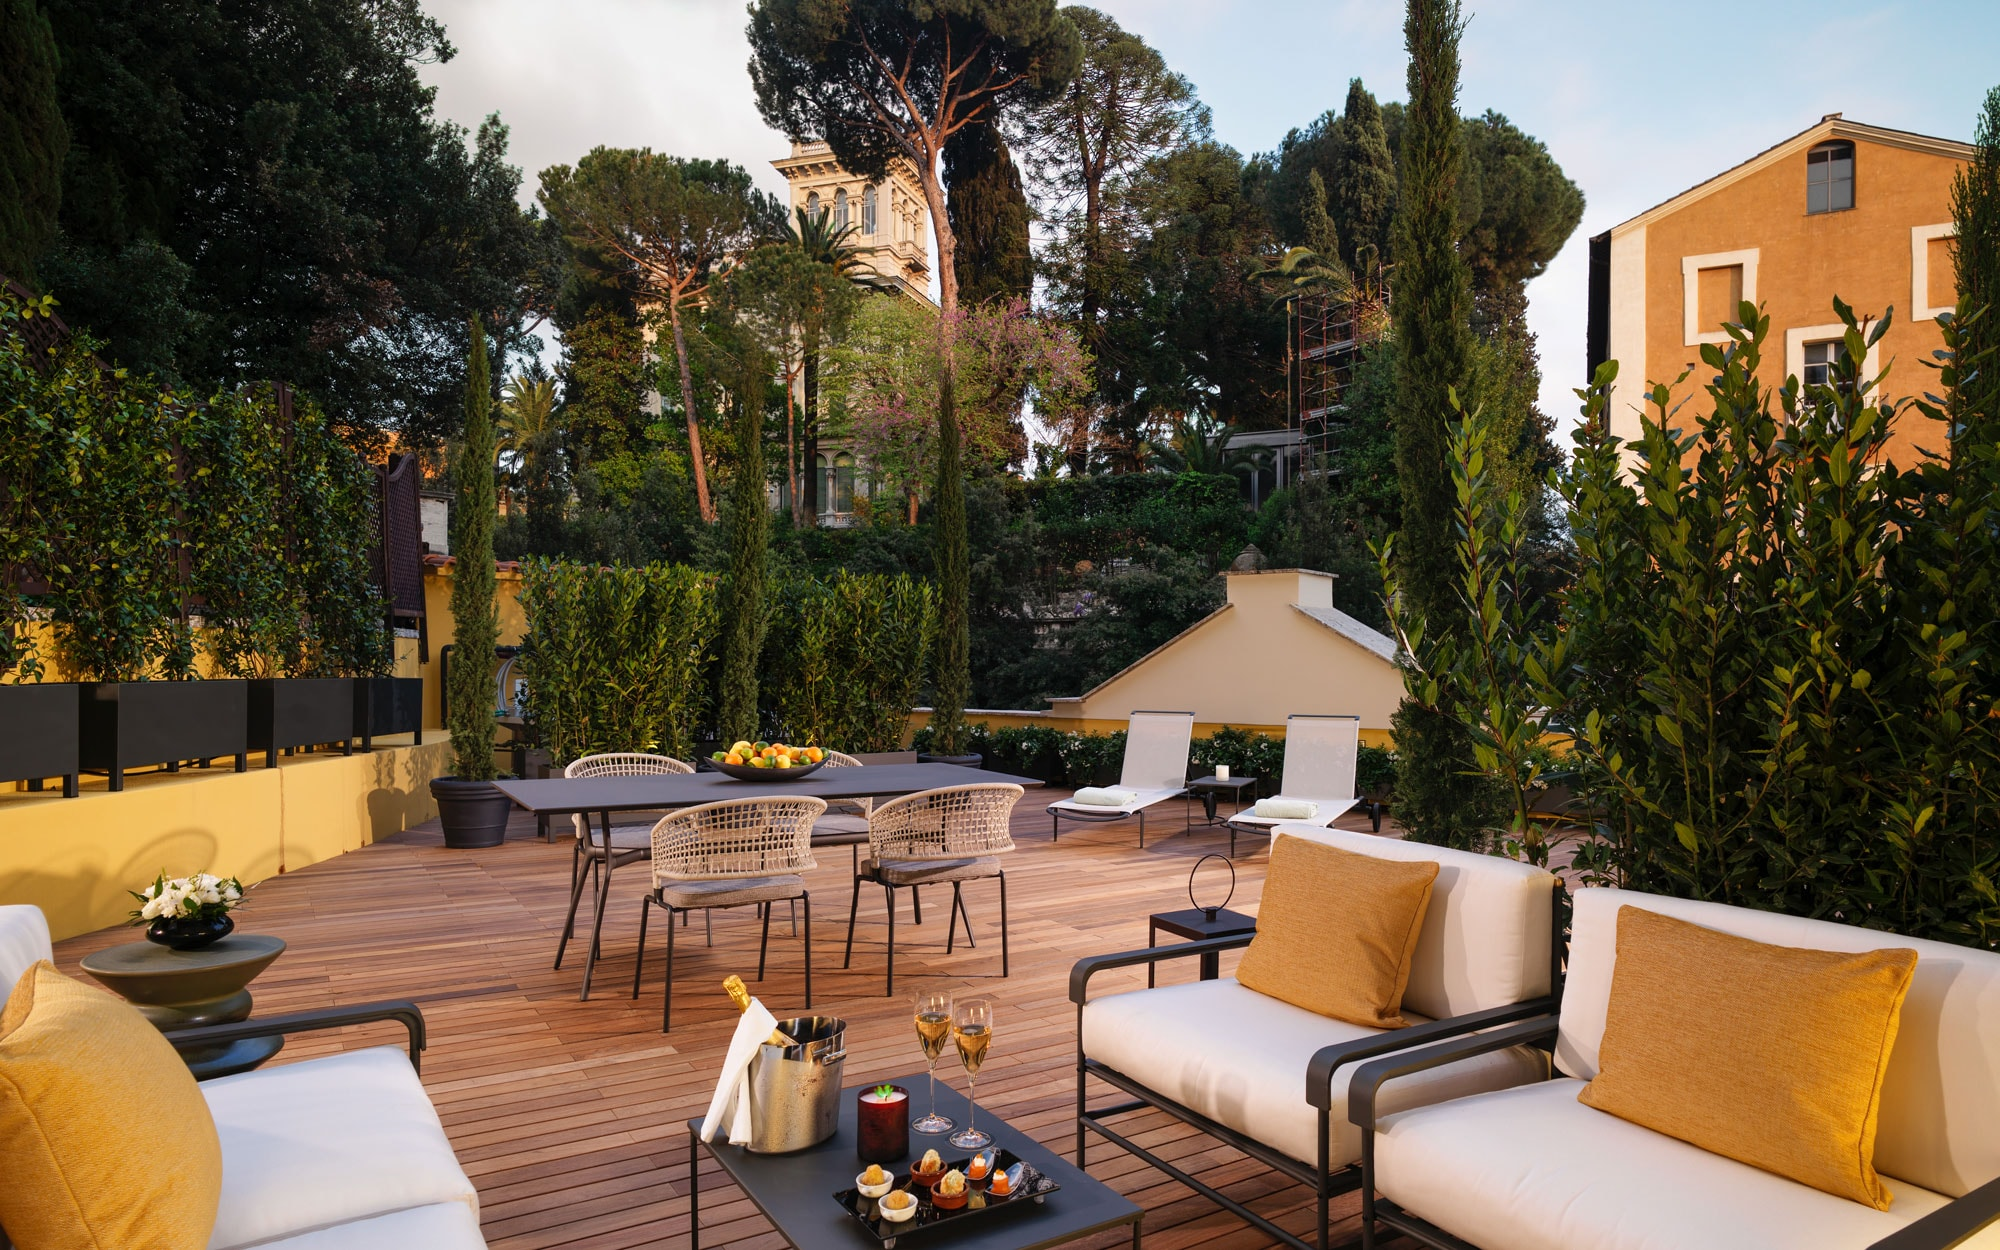 Hotel Terrasse Hotel Eden Review Rome Italy Travel